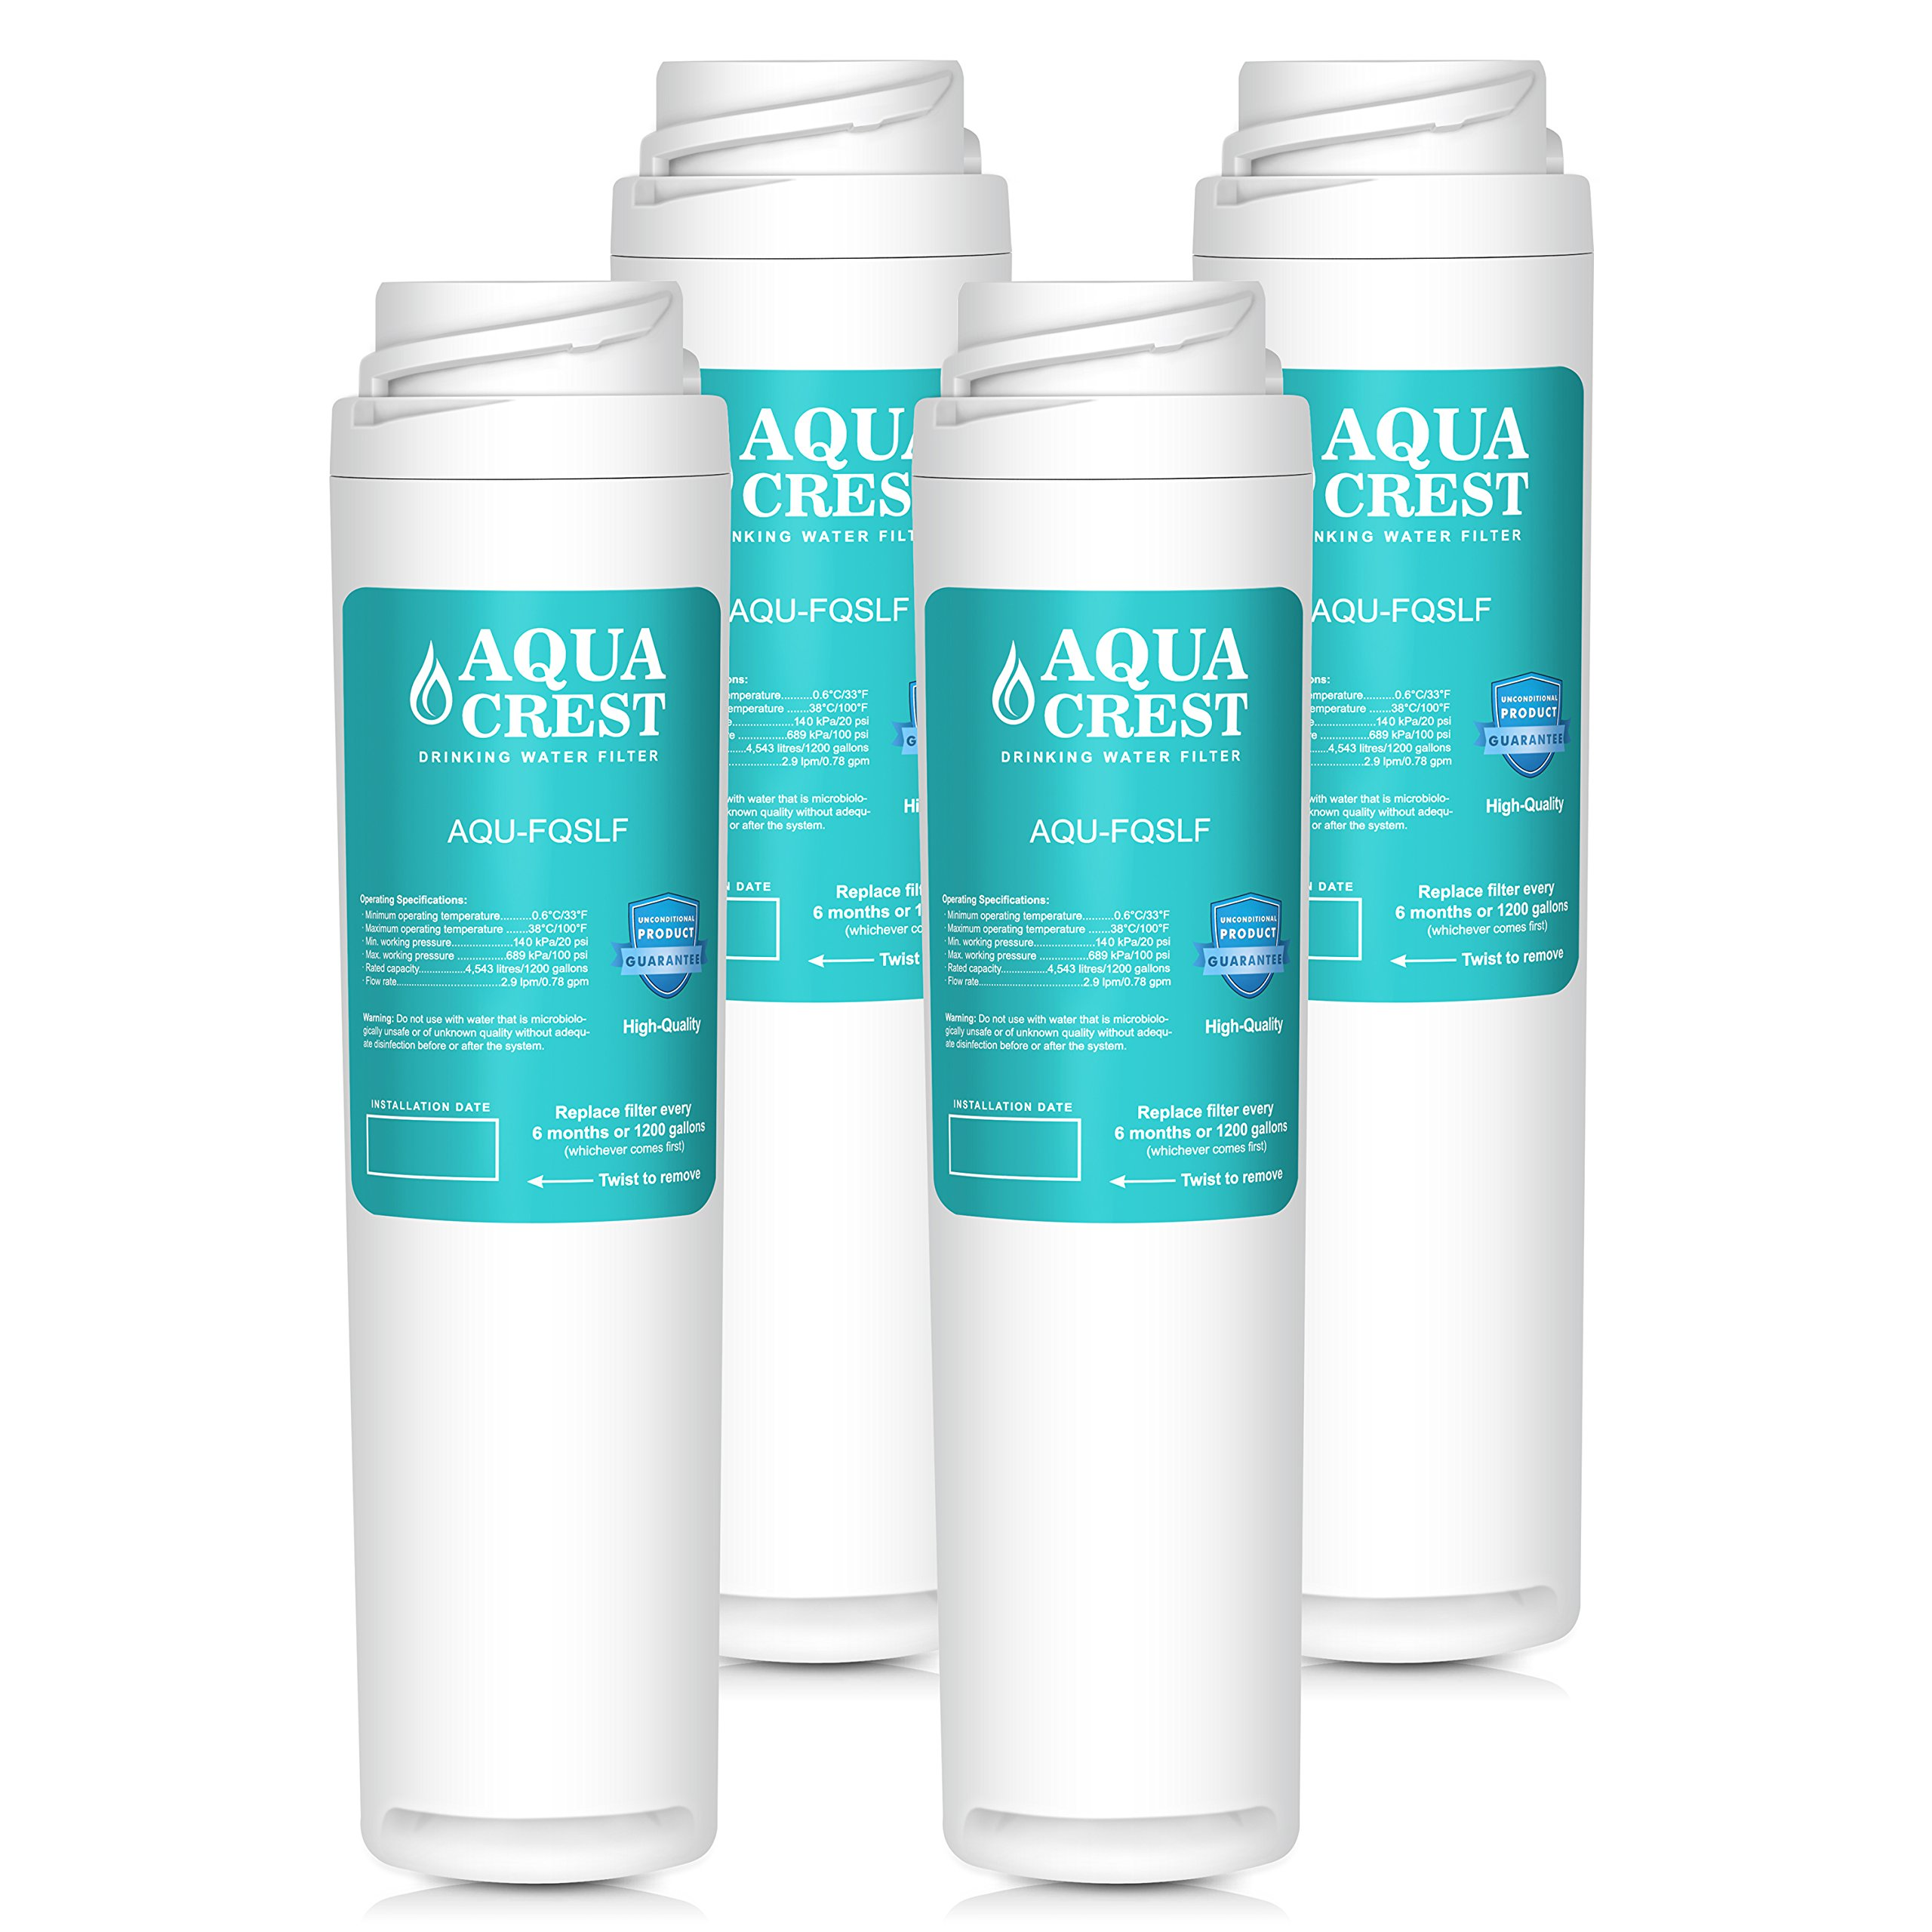 AQUACREST FQSLF Replacement Under Sink Water Filter, Compatible with GE FQSLF (2 Set)